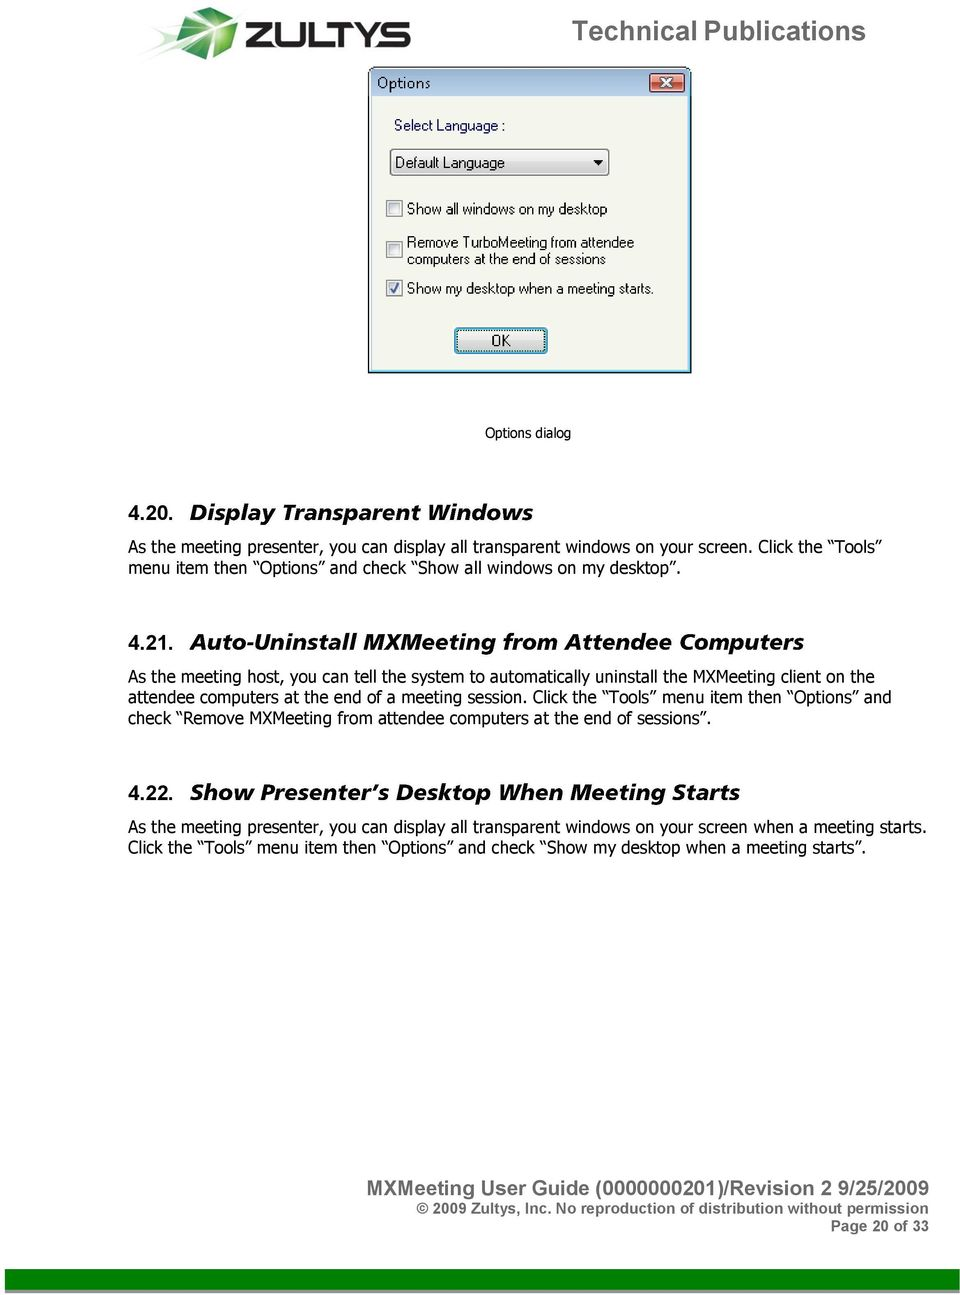 As the meeting host, you can tell the system to automatically uninstall the MXMeeting client on the attendee computers at the end of a meeting session.